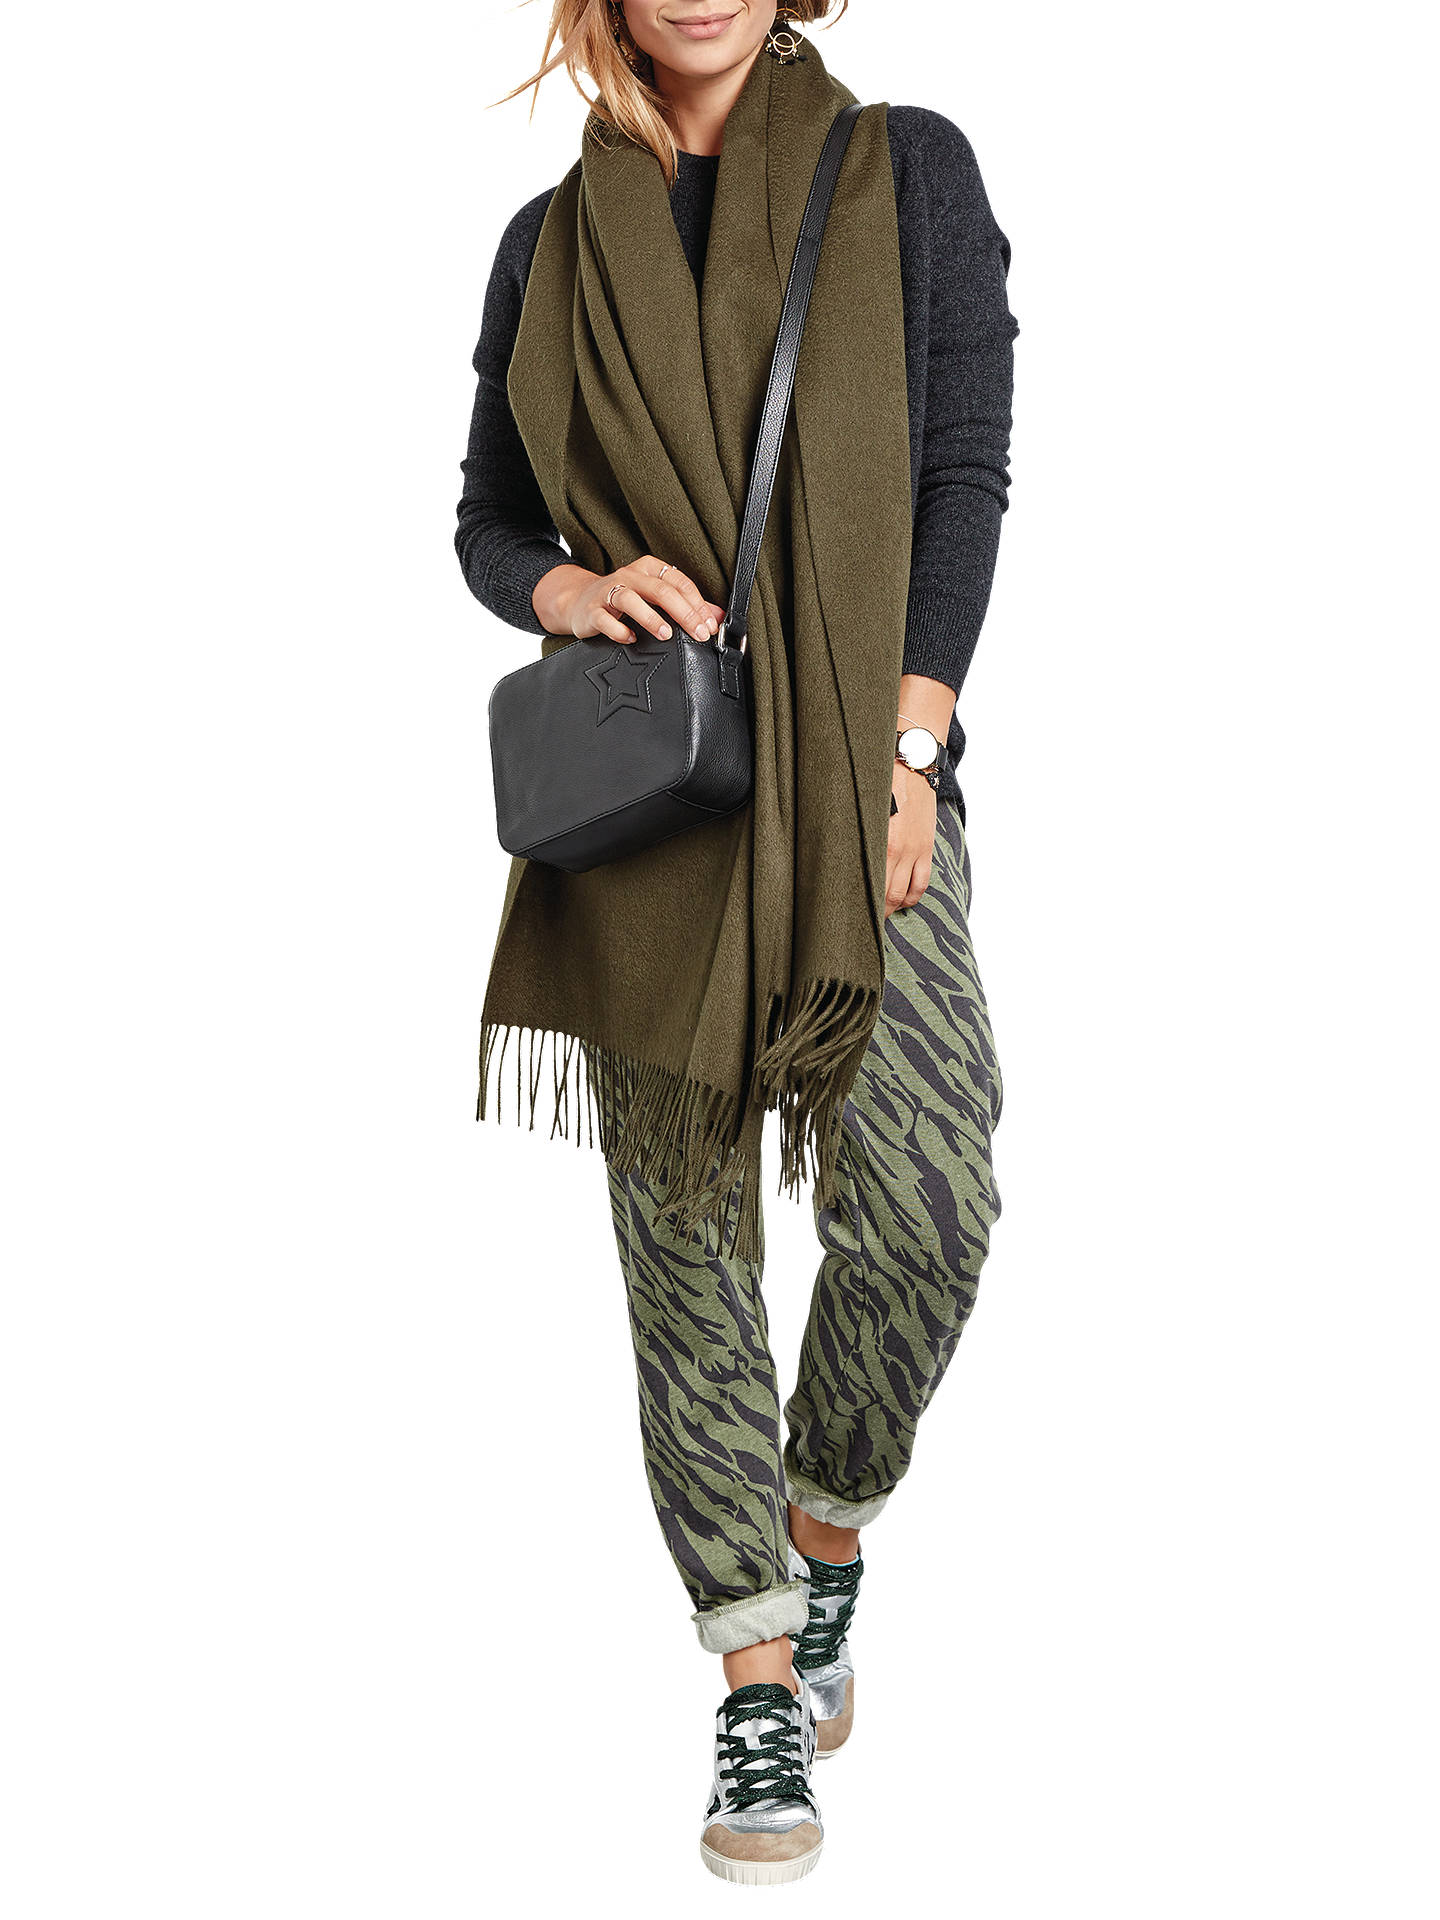 7542a80a37a966 Buy hush Morgan Printed Joggers, Zebra Olive/Charcoal, XS Online at  johnlewis.